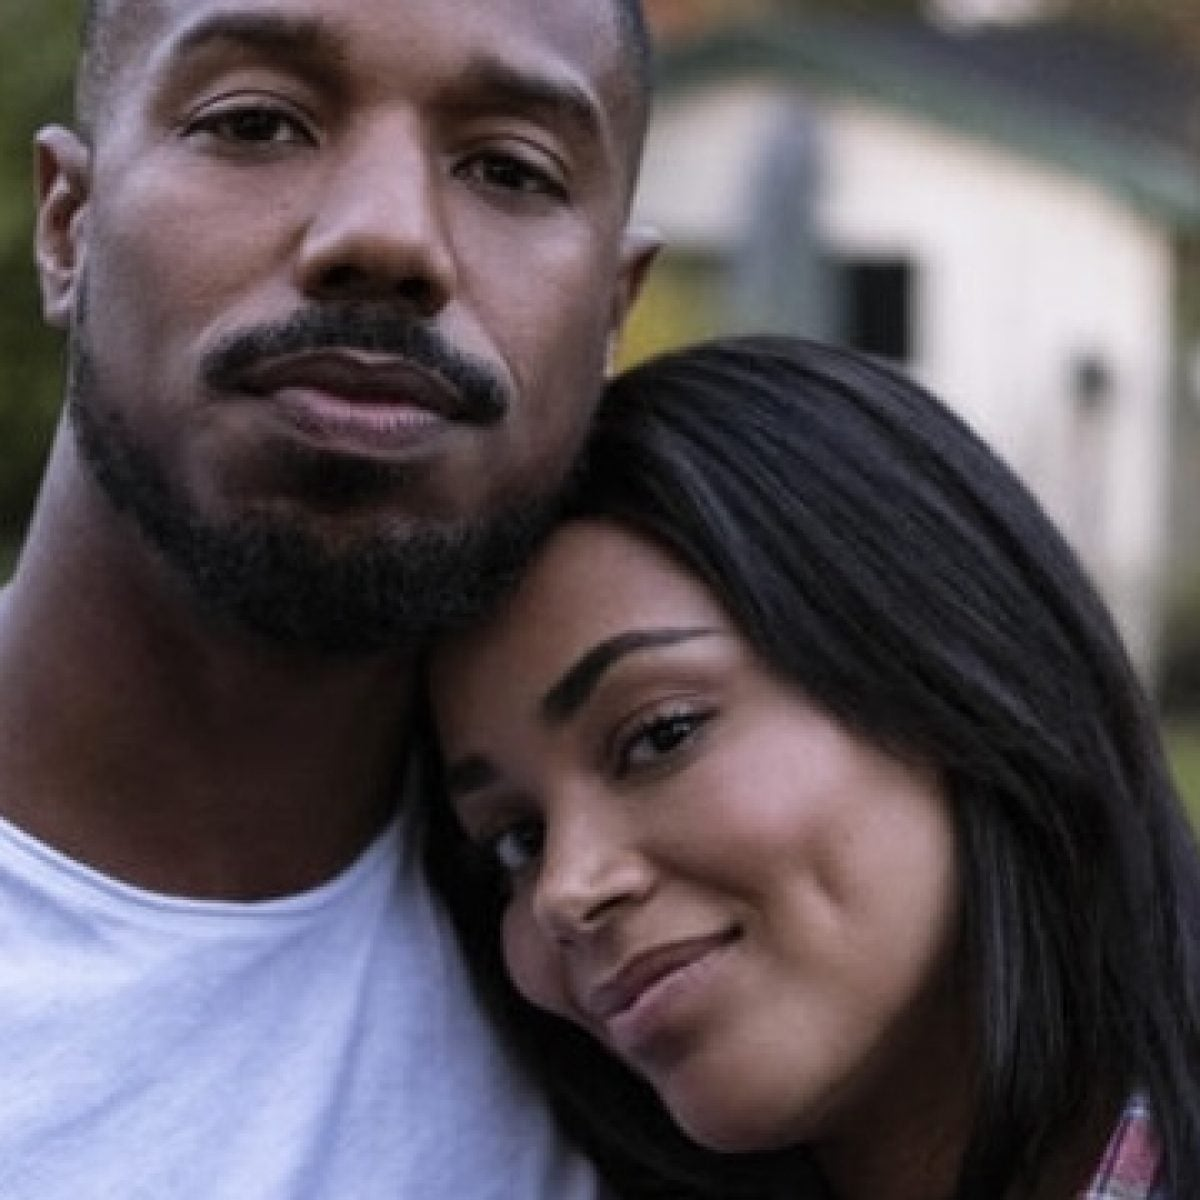 Michael B. Jordan Says Lauren London's Transparency About Grief Helped His Acting In 'Without Remorse'